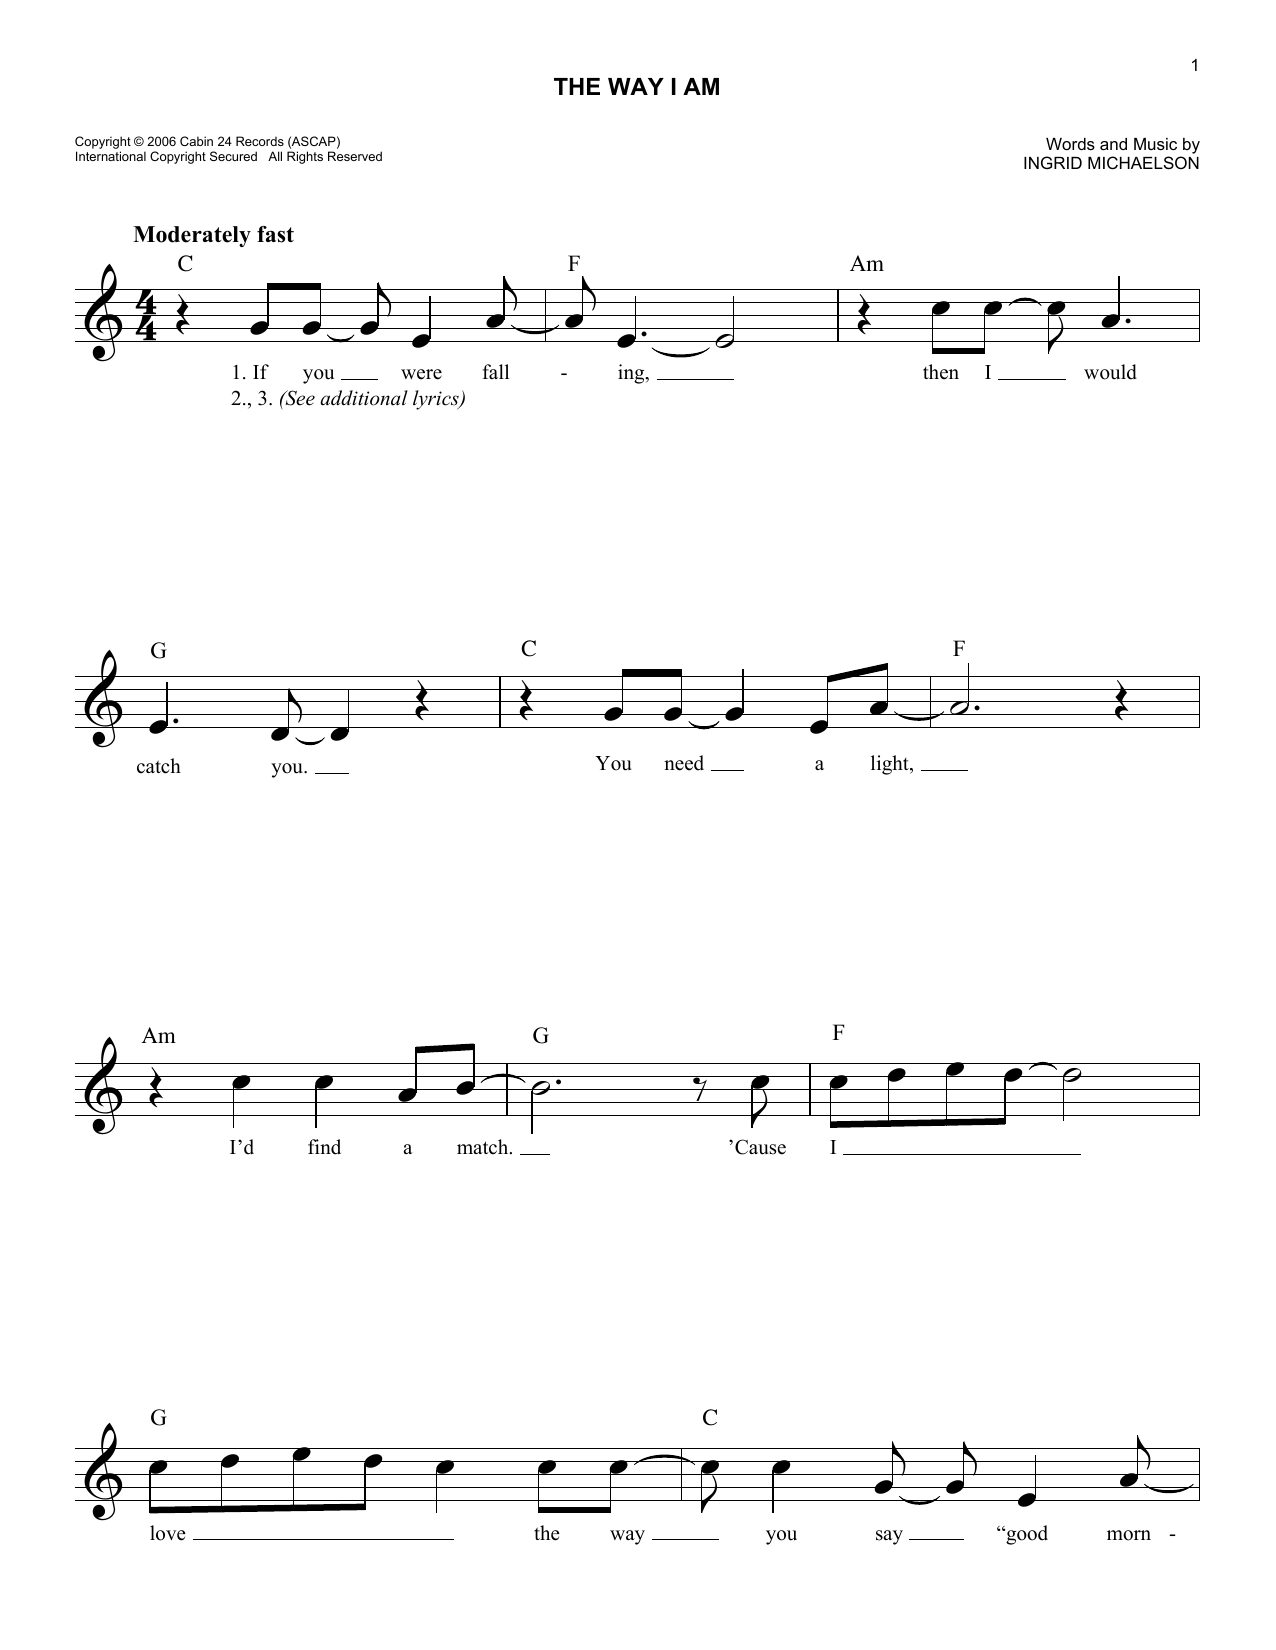 The Way I Am Chords The Way I Am Ingrid Michaelson Piano Vocal Guitar Right Hand Melody Digital Sheet Music